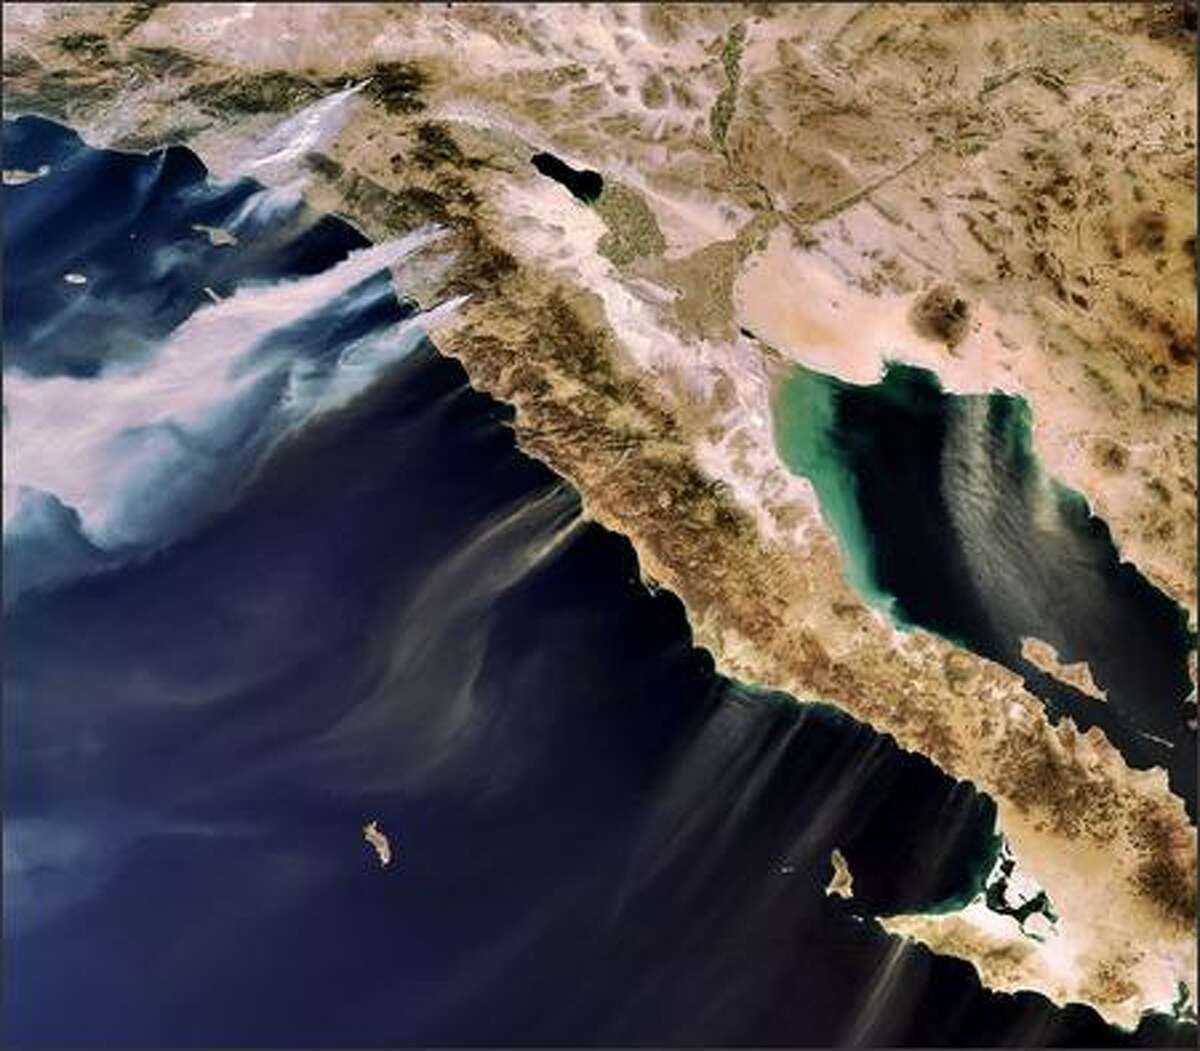 A photo provided by the European Space Agency ESA shows the Envisat's MERIS image, acquired on Oct. 22, 2007, of desert winds blowing smoke from wildfires in Southern California. Sand is visible being blown from Mexicos Baja California Peninsula over the Gulf of California to the east and the Pacific Ocean to the west.